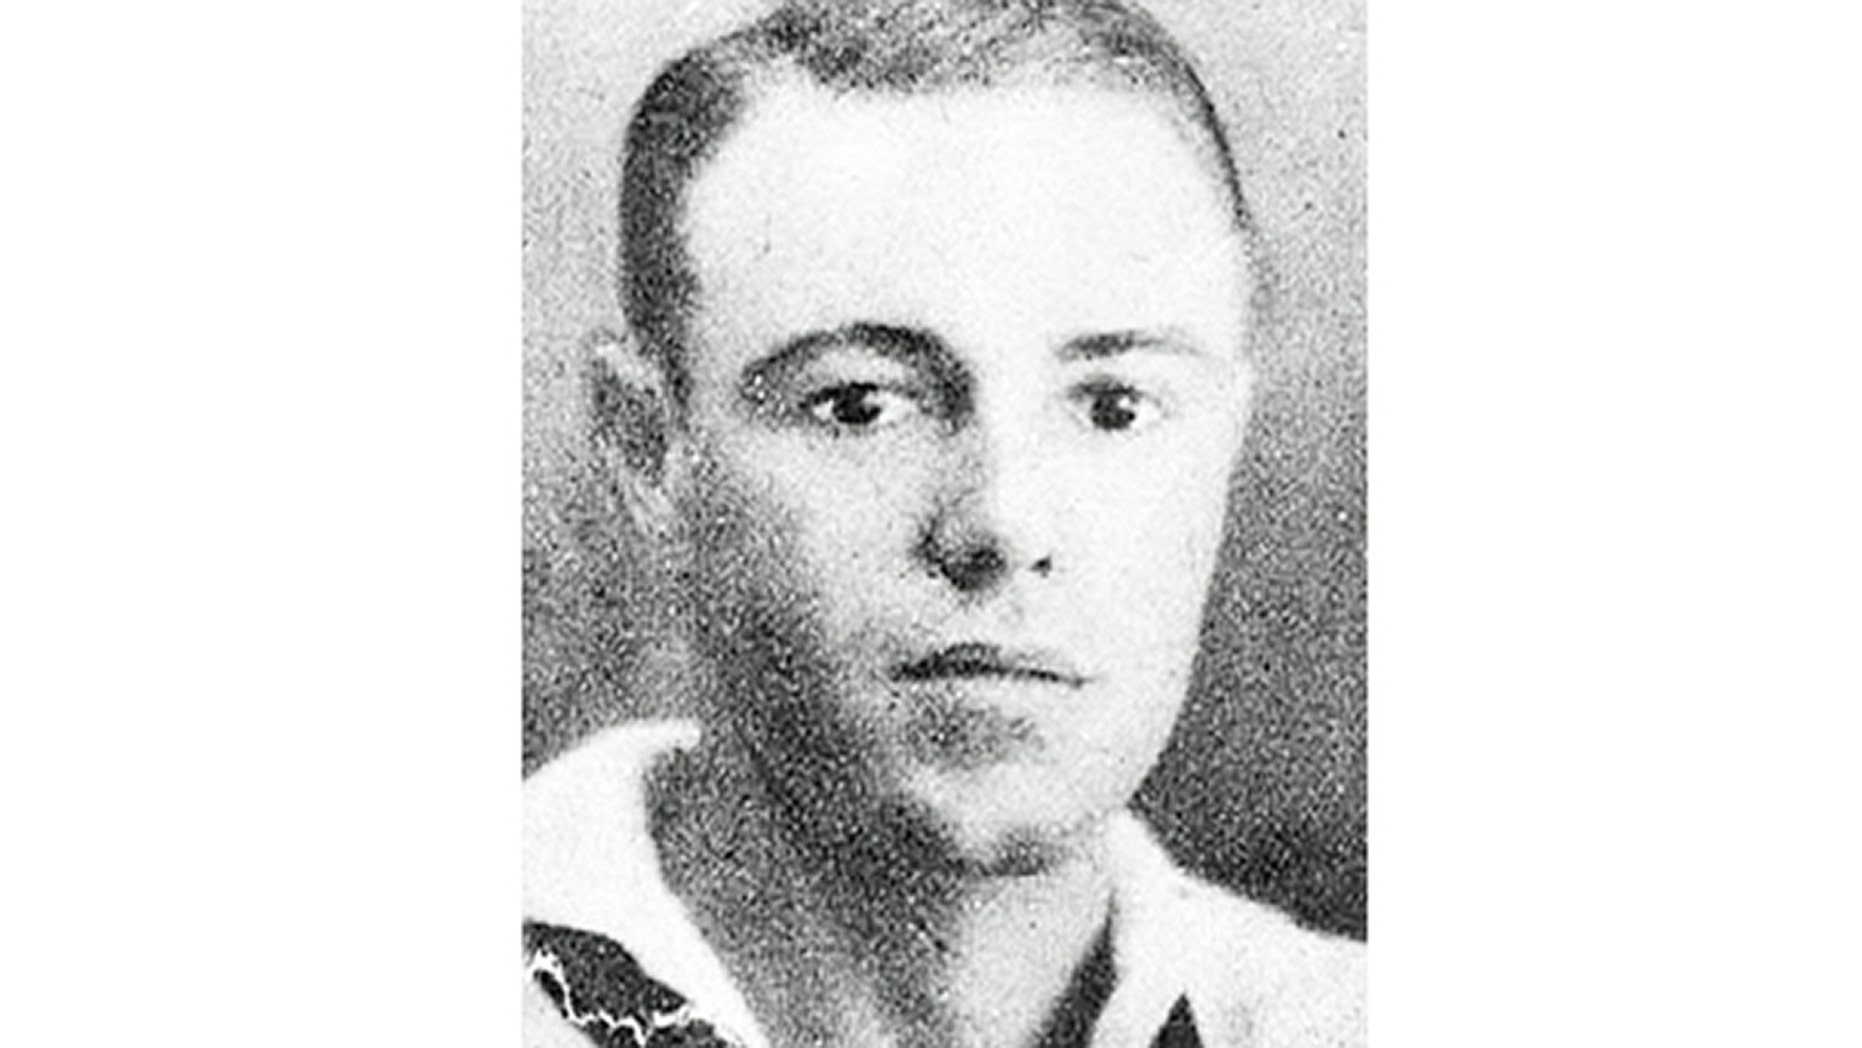 Navy Fire Controlman 1st Class Edward J. Shelden, 29, of Indianapolis, was serving aboard the USS Oklahoma when it was struck by enemy fire multiple times on Dec. 7, 1941. (Defense POW/MIA Accounting Agency)